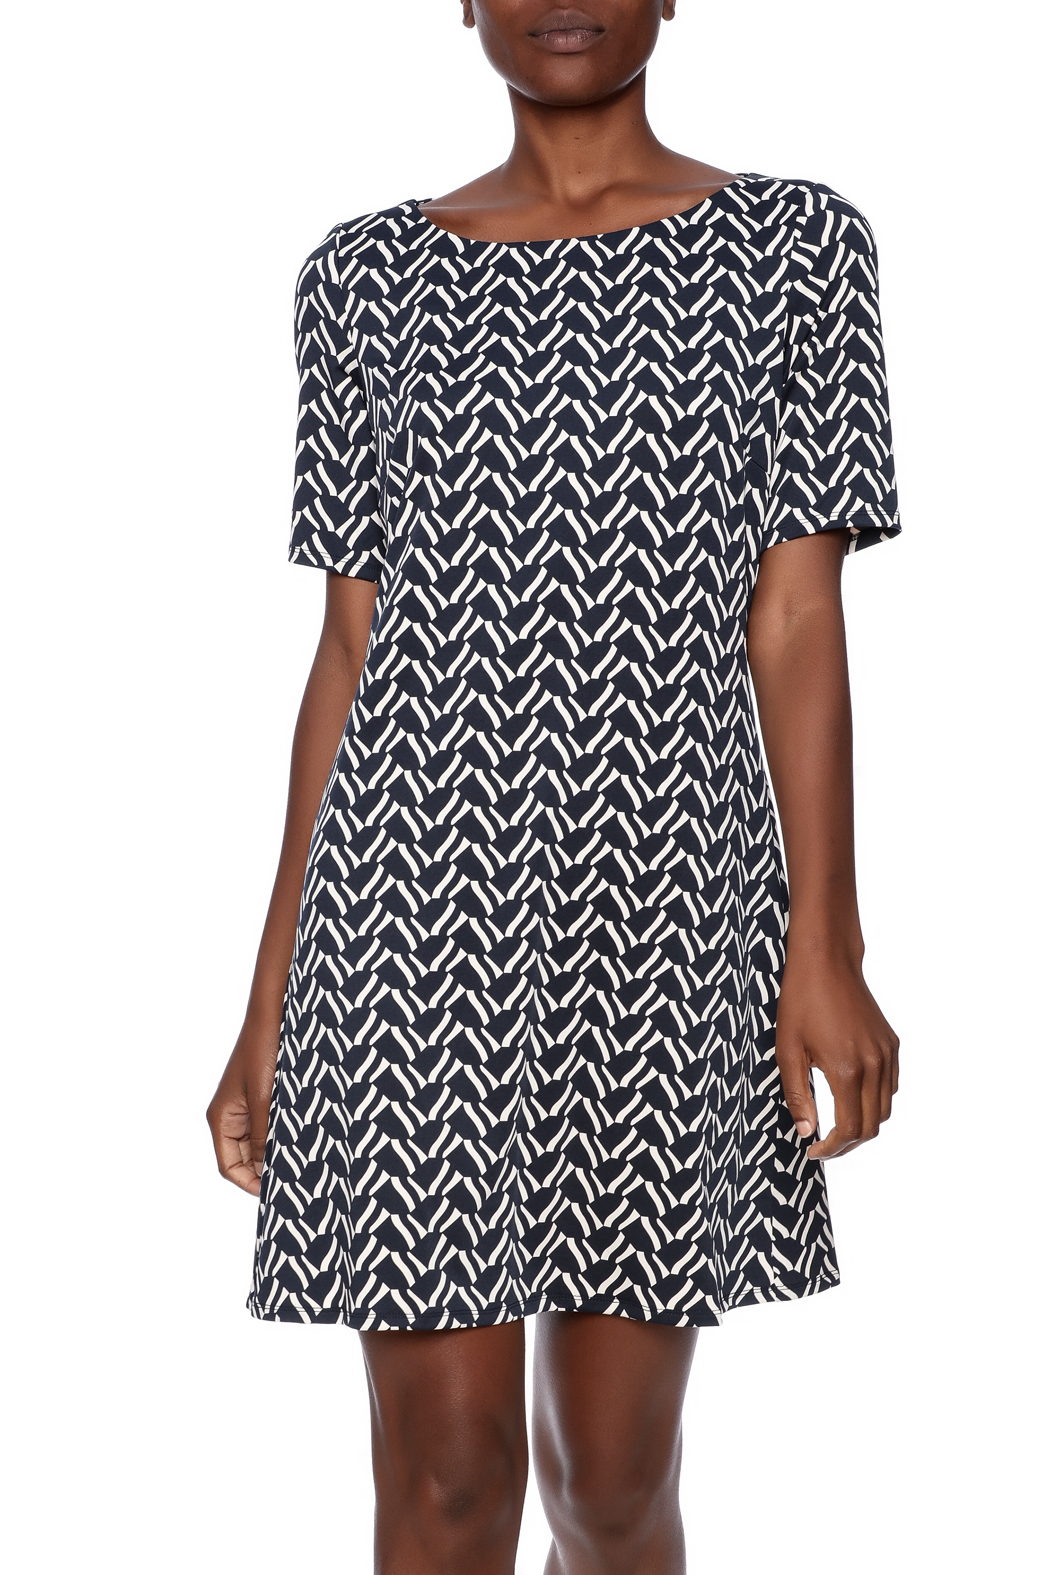 Julie Brown NYC Short Sleeve Dress - Front Cropped Image